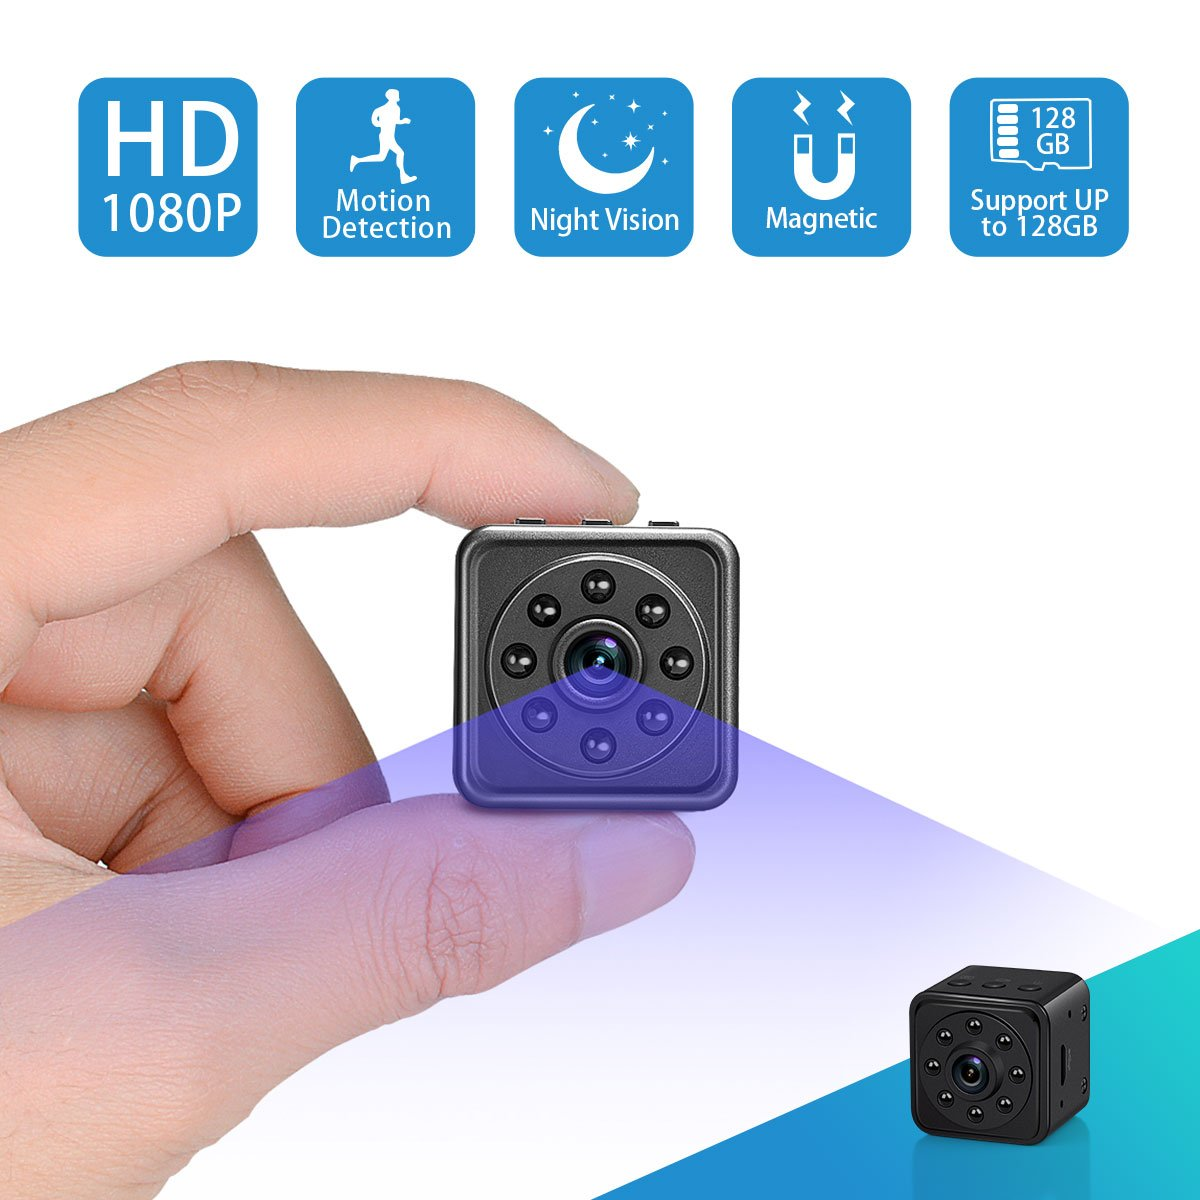 Mini Spy Hidden Camera-SOOSPY 1080P Portable Survelliance Security Camera Nanny Cam with Night Vision/Motion Detection /420mAh Battery for Home and Office,Indoor/Outdoor Use-No WIFI Function